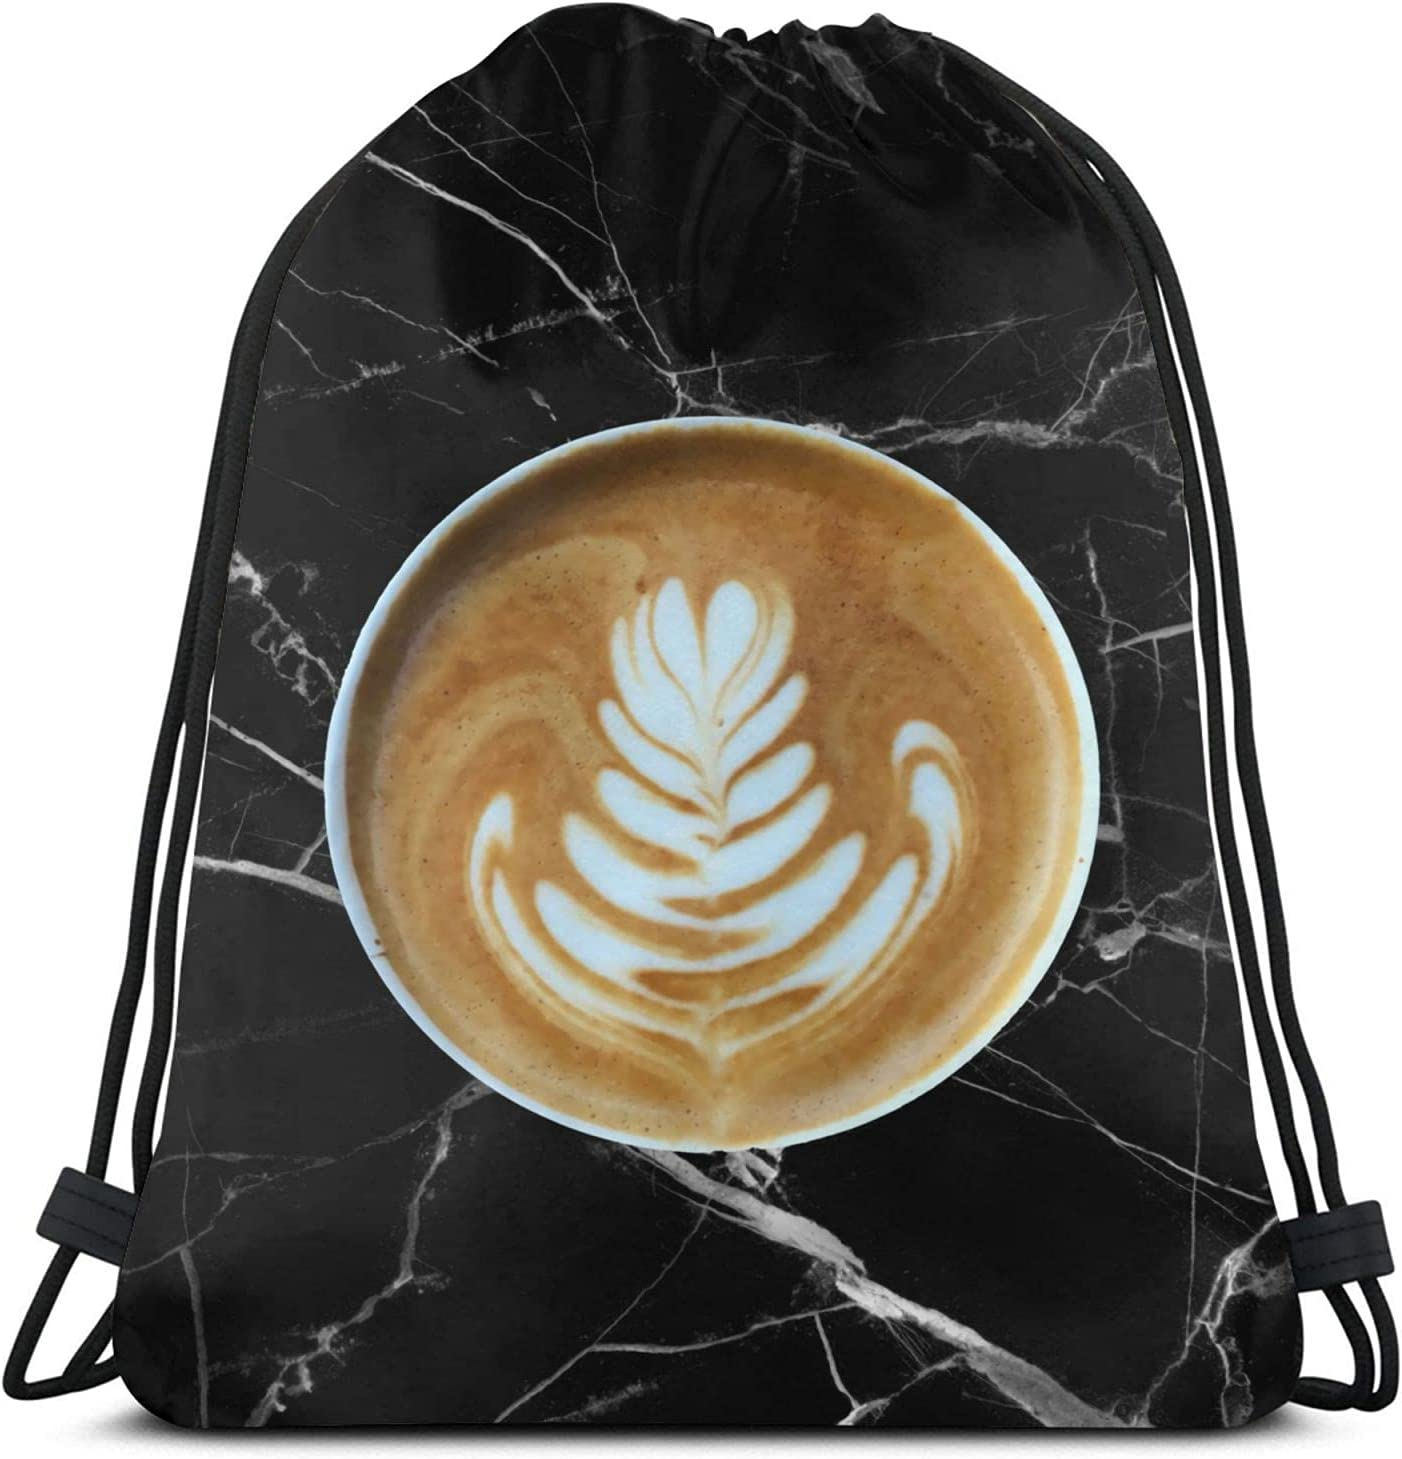 Coffee Break Drawstring Max 55% OFF Backpack String Max 60% OFF Sac Gym Bags Workout Bag